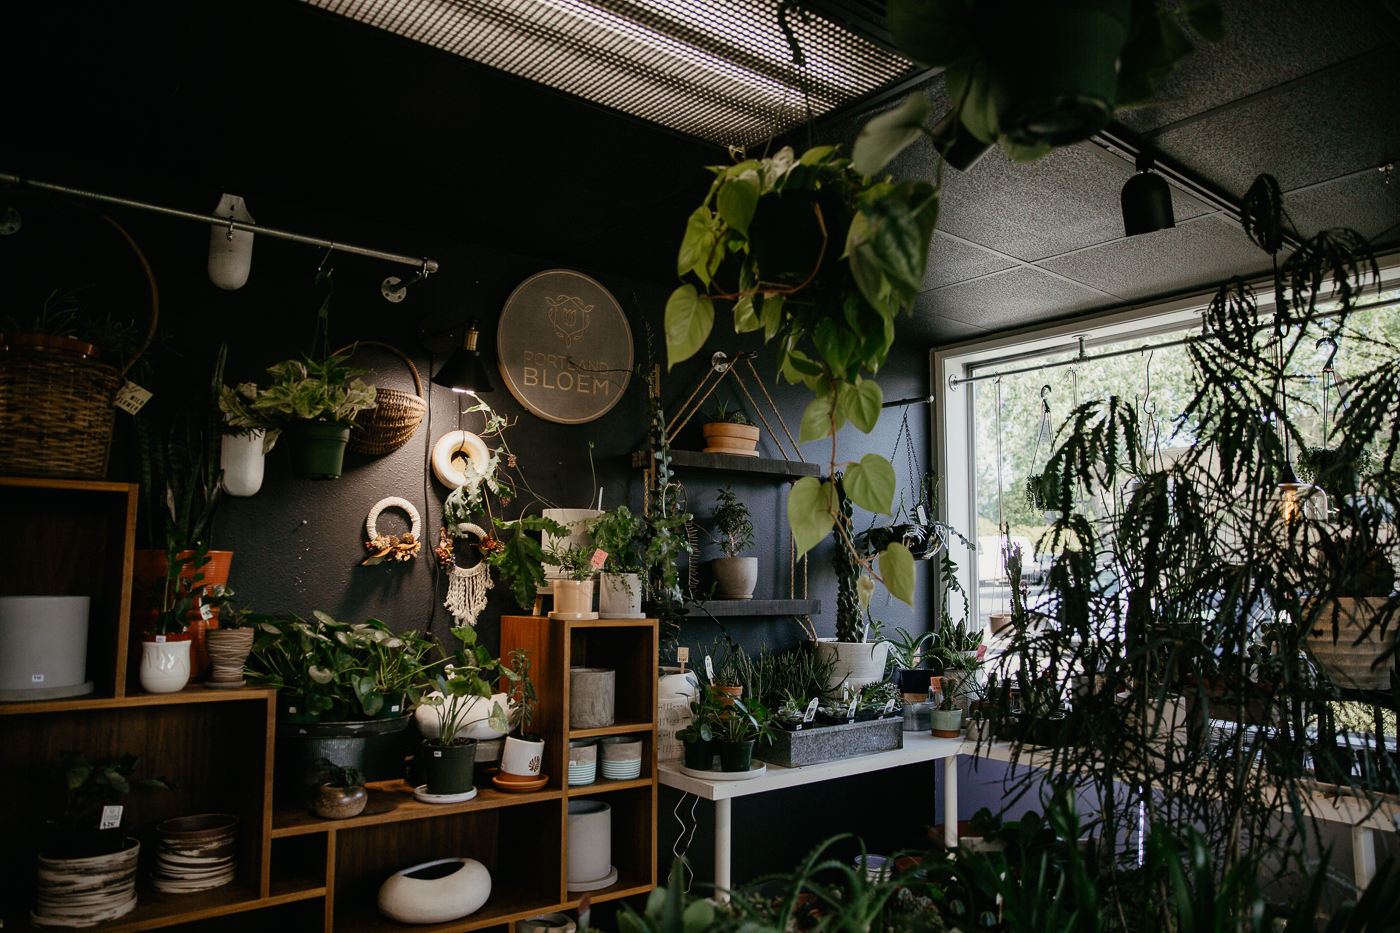 the interior of Portland Bloem, a dark room filled with plants